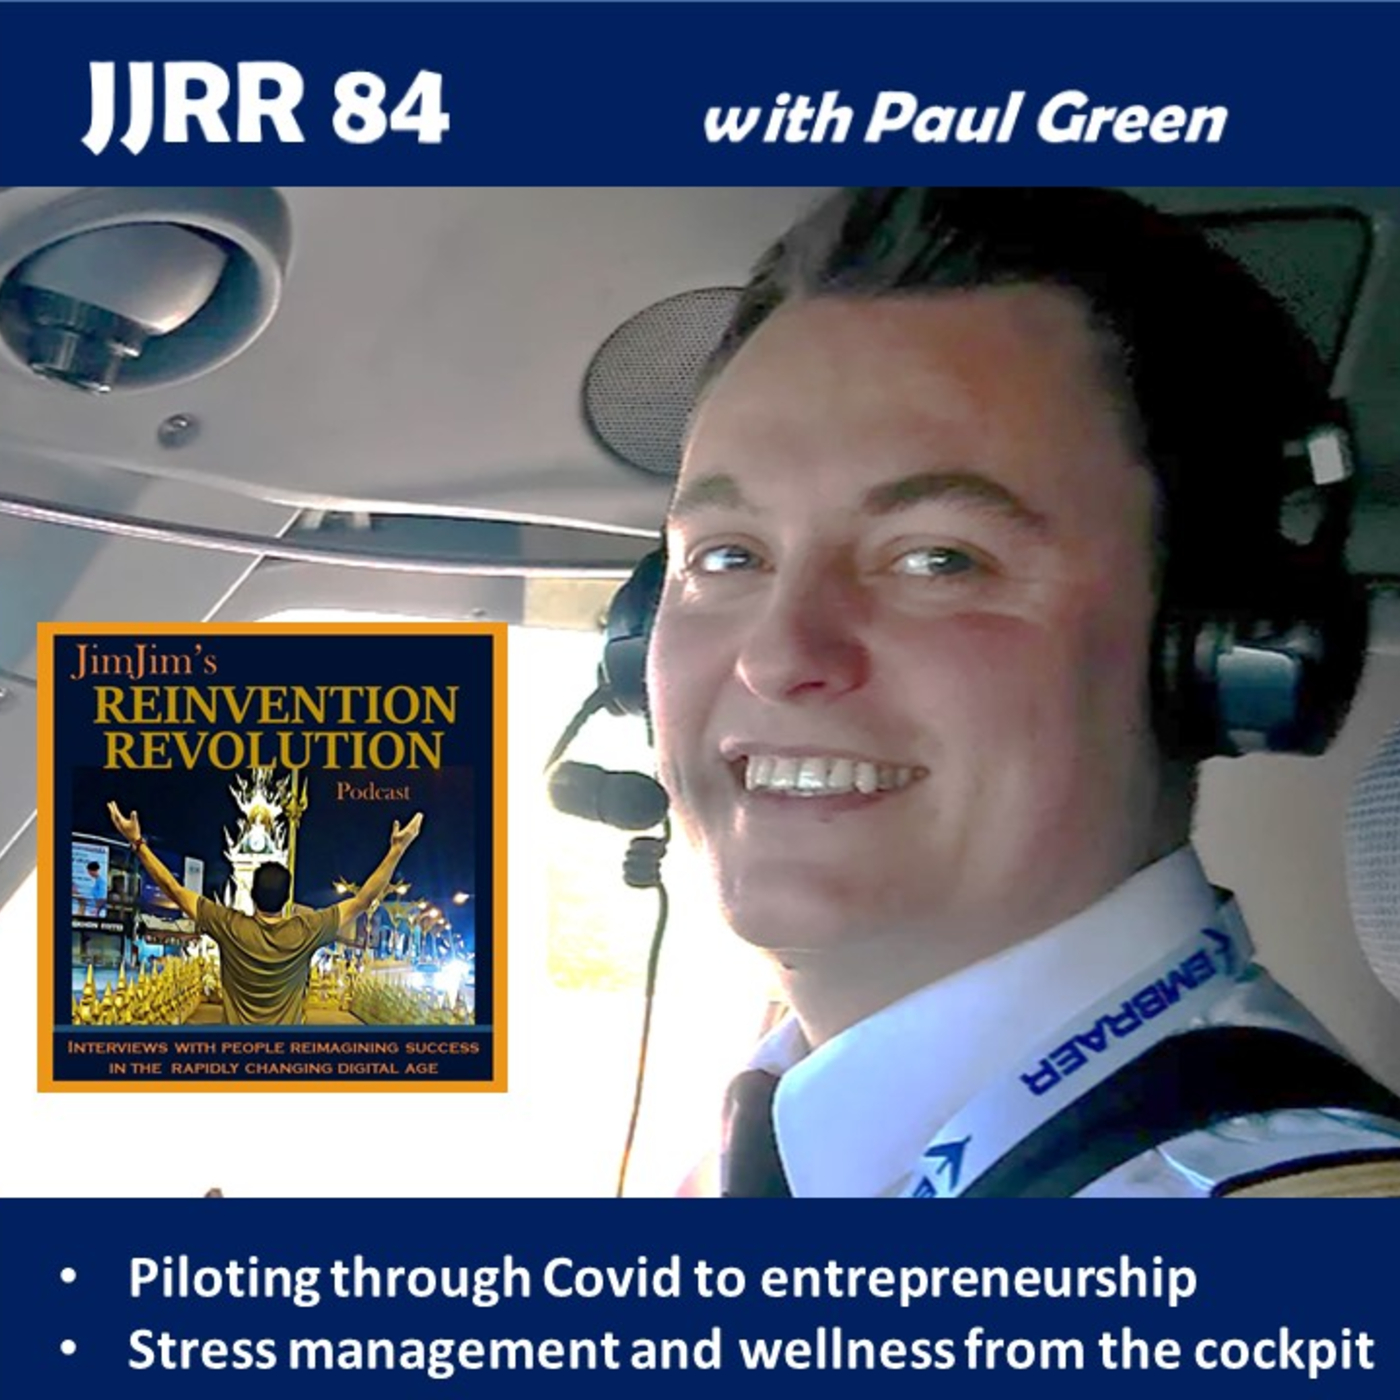 JJRR 84 Piloting through Covid to entrepreneurship – Stress management and wellness from the cockpit – with Paul Green